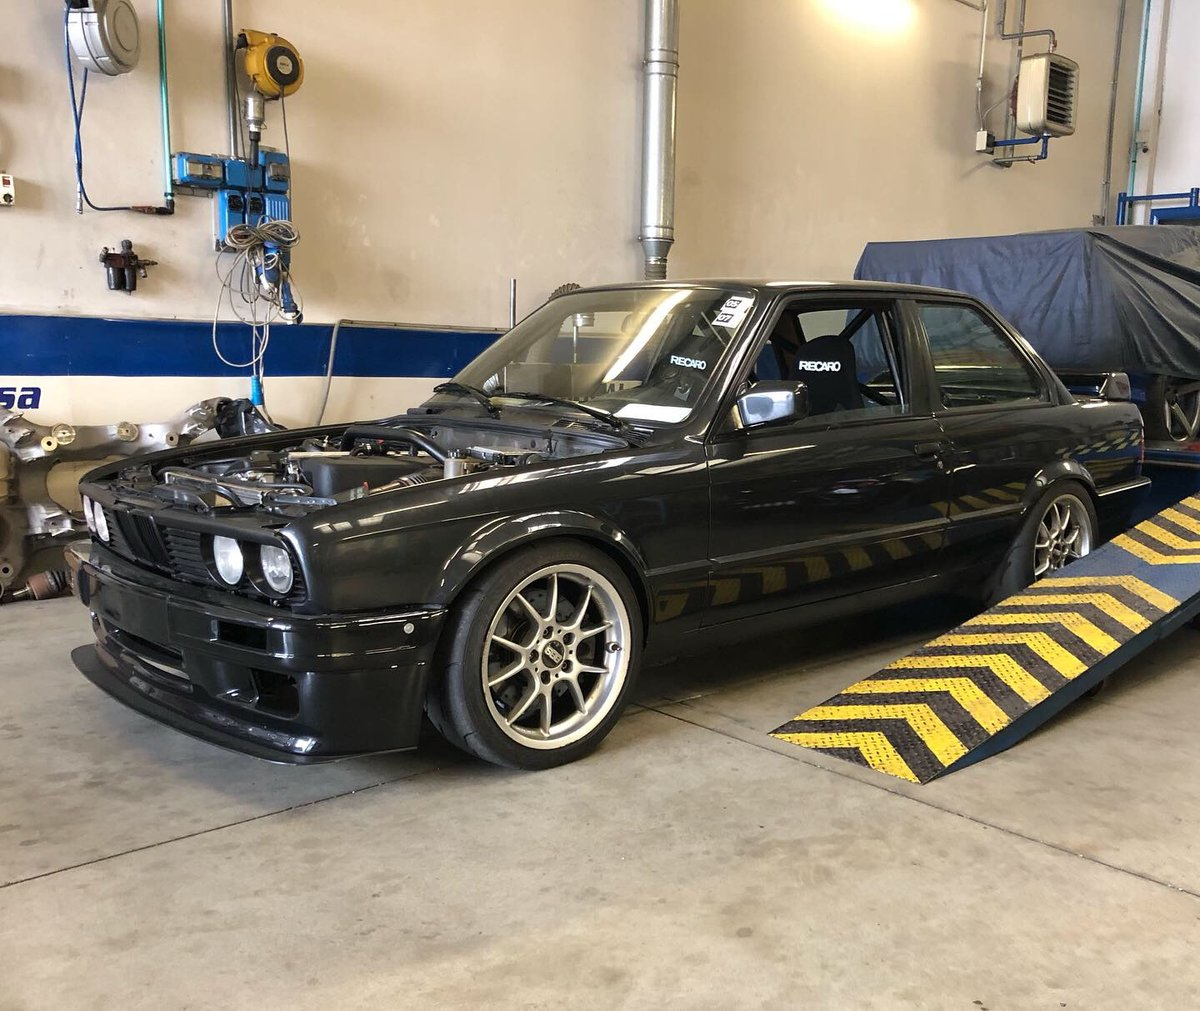 1991 Bmw e30 s54 race car For Sale | Car And Classic